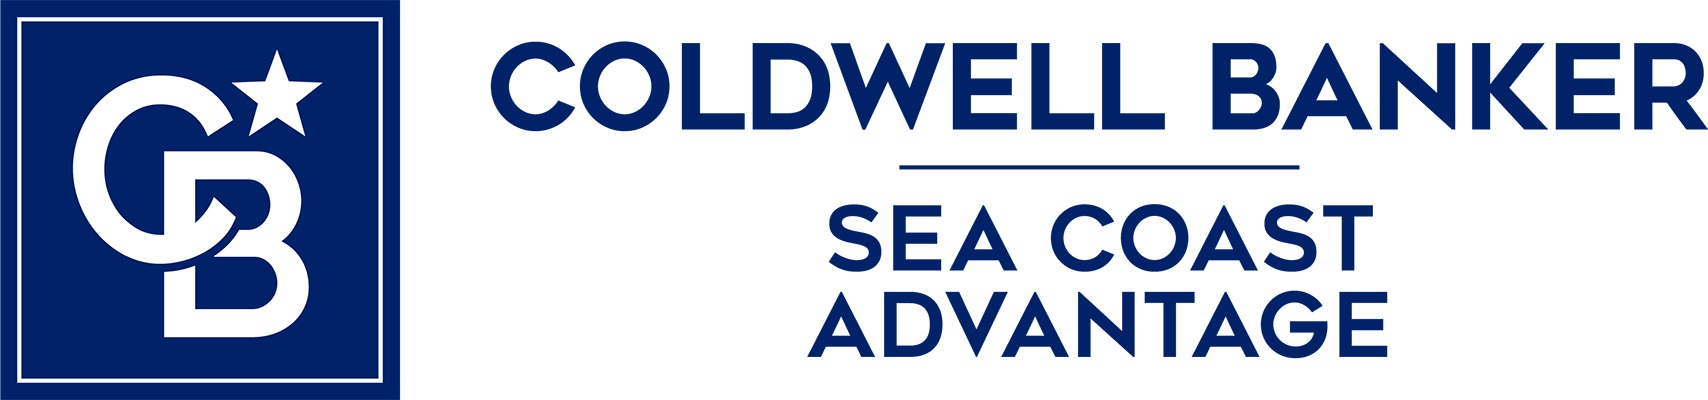 Rich Bove - Coldwell Banker Sea Coast Advantage Realty